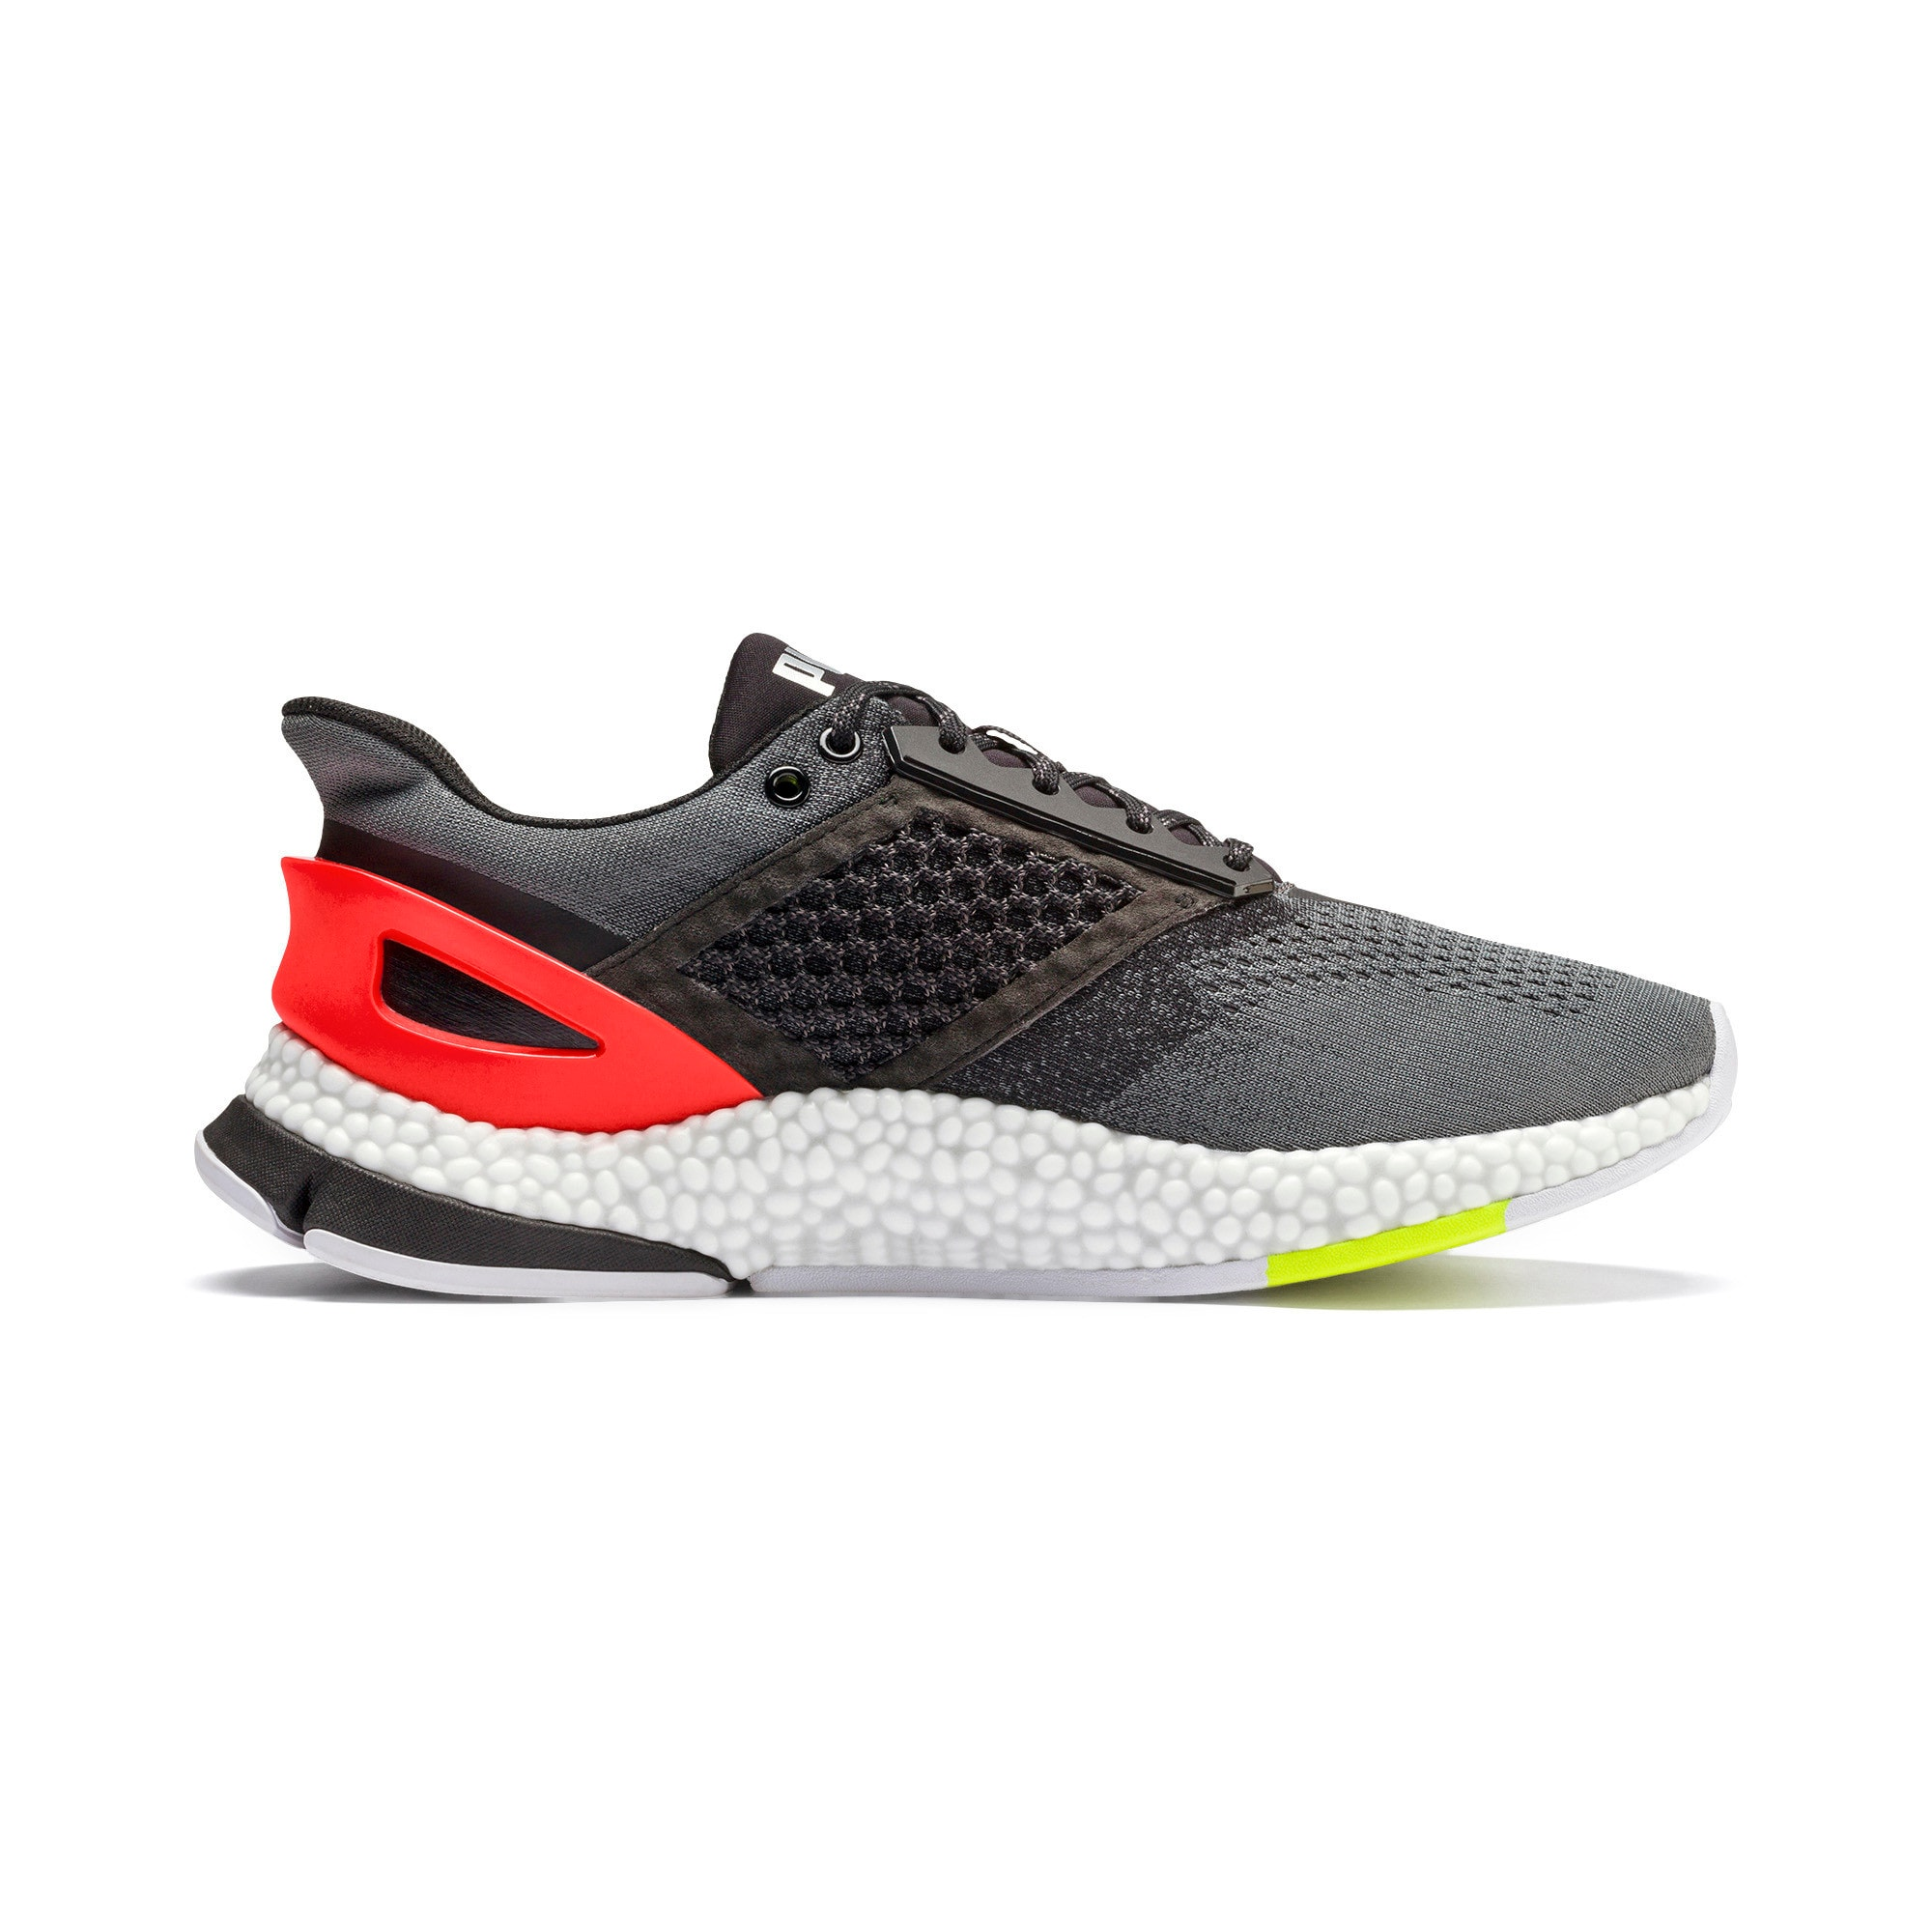 Thumbnail 7 of HYBRID Astro Men's Running Shoes, CASTLEROCK-Puma Blck-Ngy Red, medium